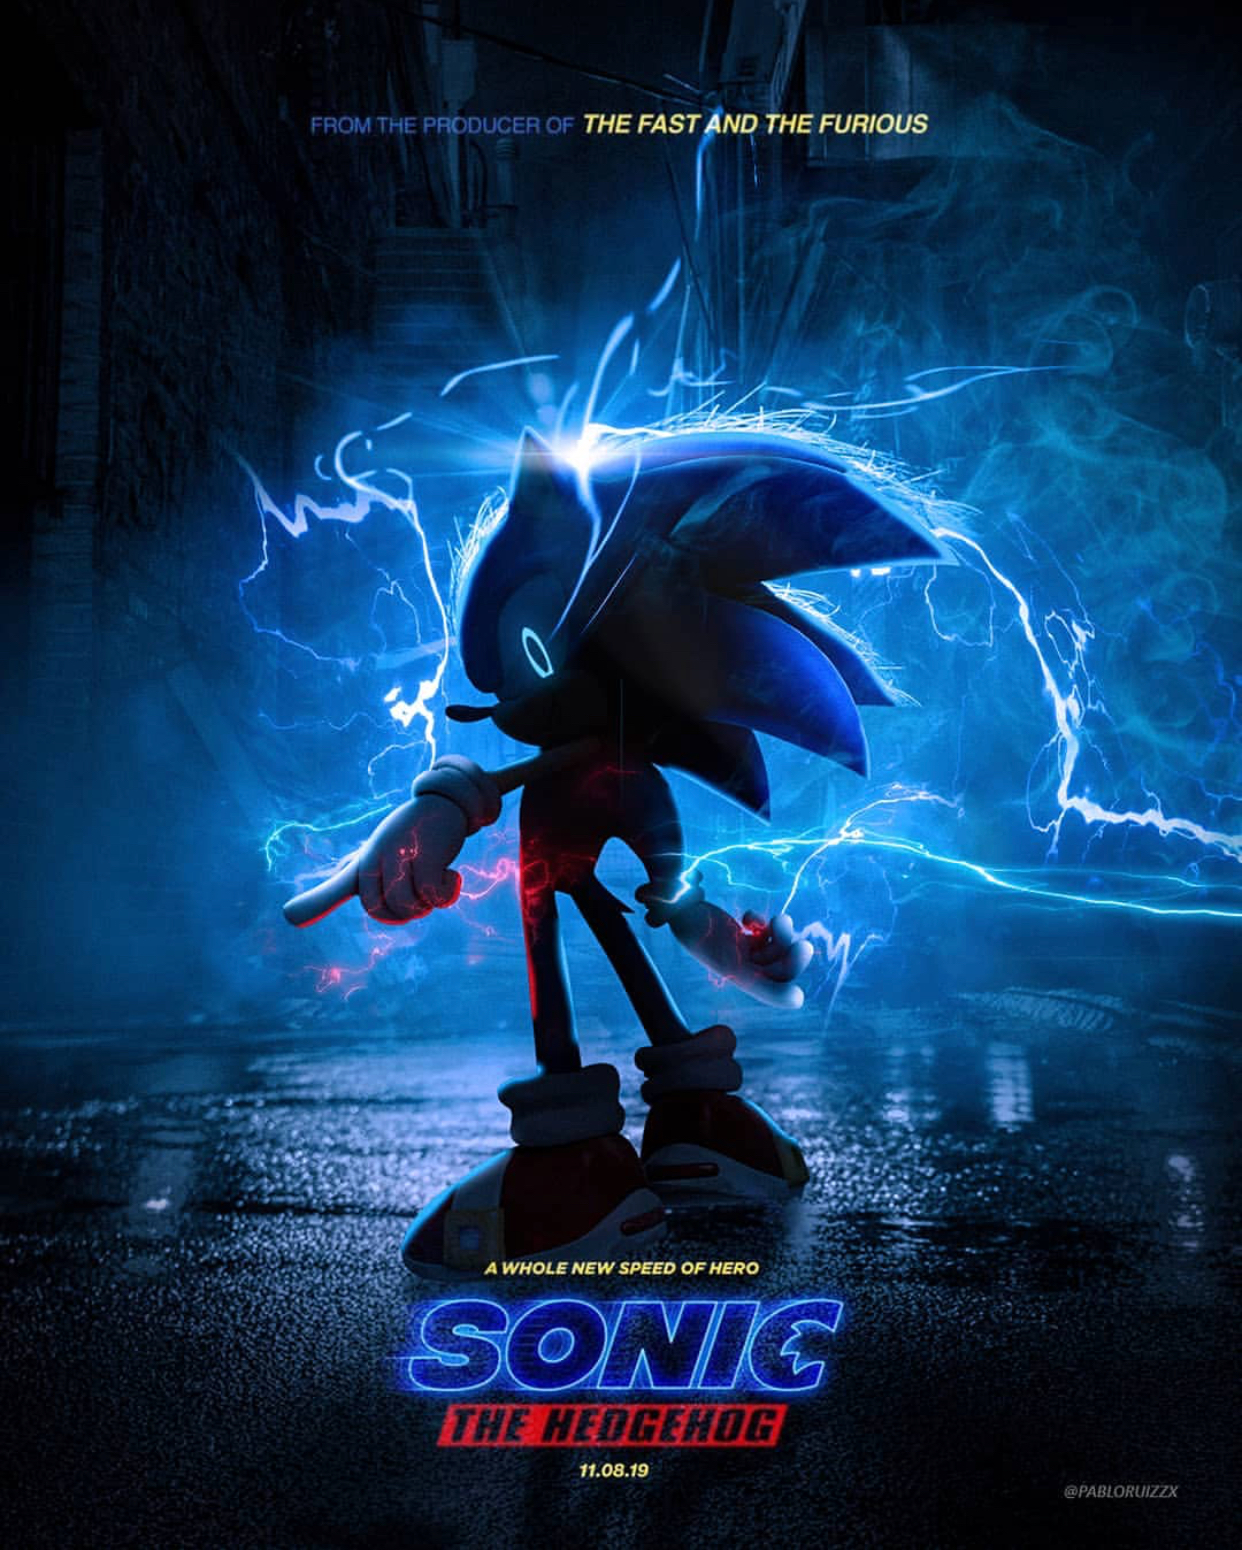 This Is What Could Have Been I Would Prefer This Than What We Are Getting Sonic The Hedgehog Movie Poster Parodies Know Your Meme